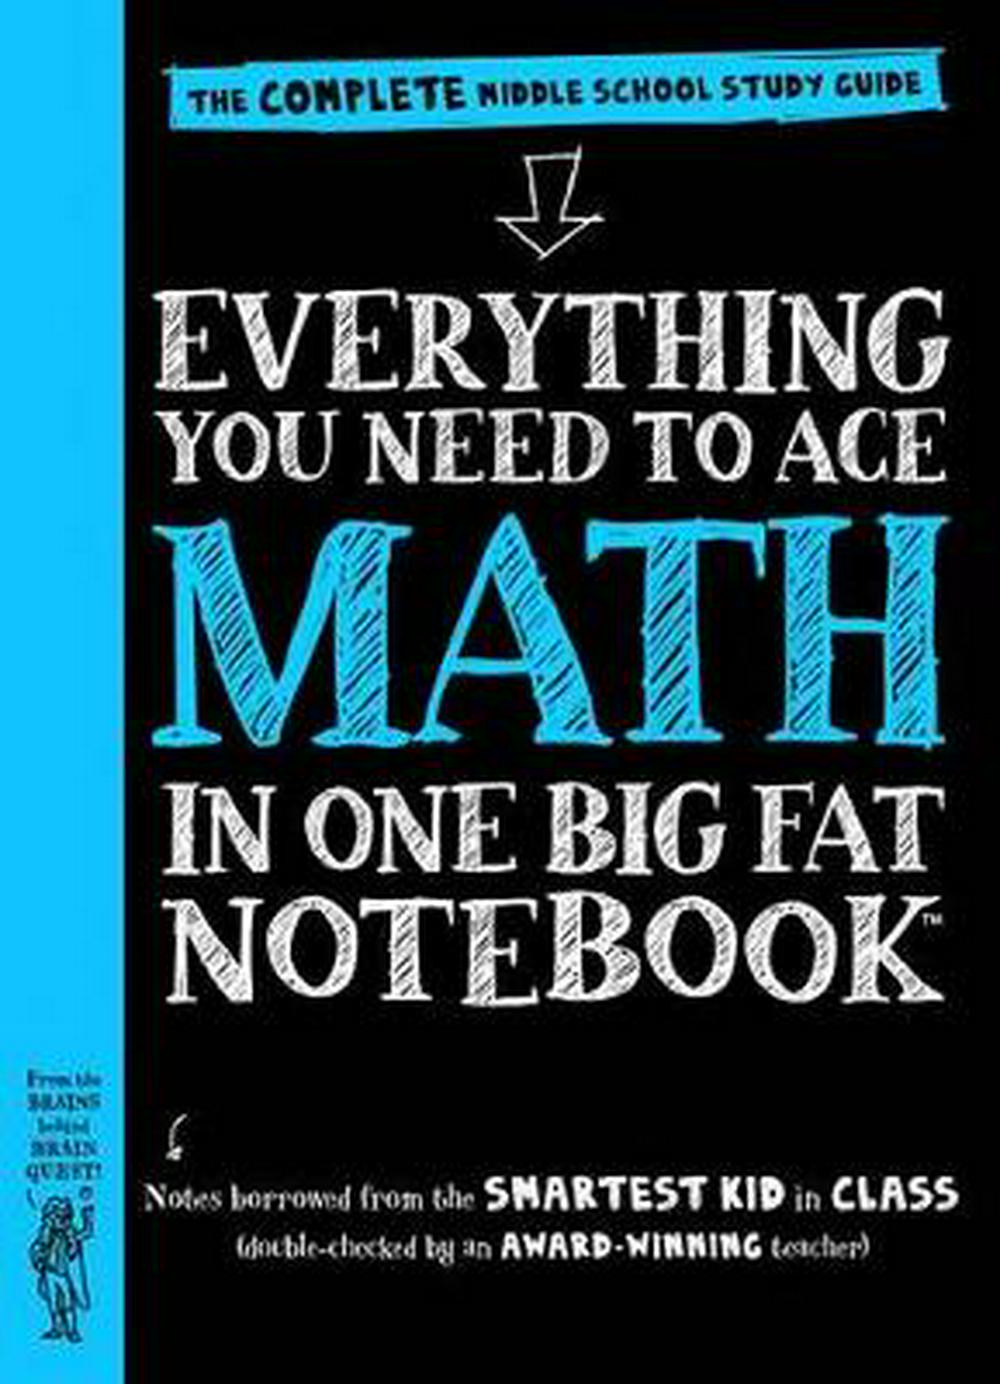 Everything You Need to Ace Math in One Big Fat NotebookA Middle School Study Guide